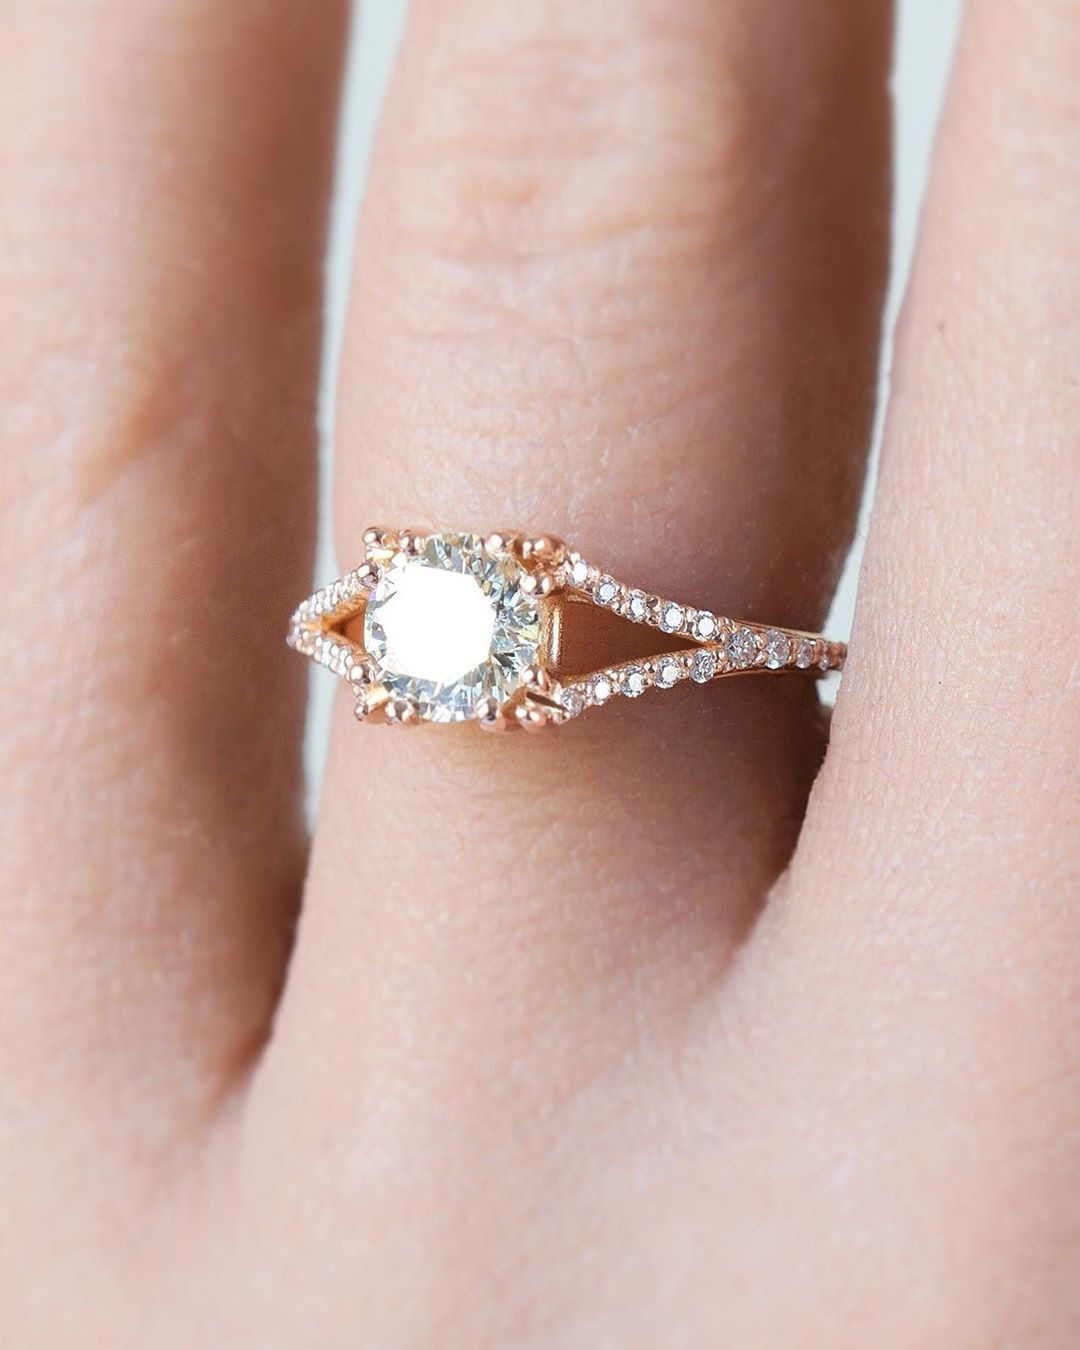 Dainty is as dainty does ✨💫 Don't you just love a split shank ring 💗 So in awe of this ring's insane and delicate pave